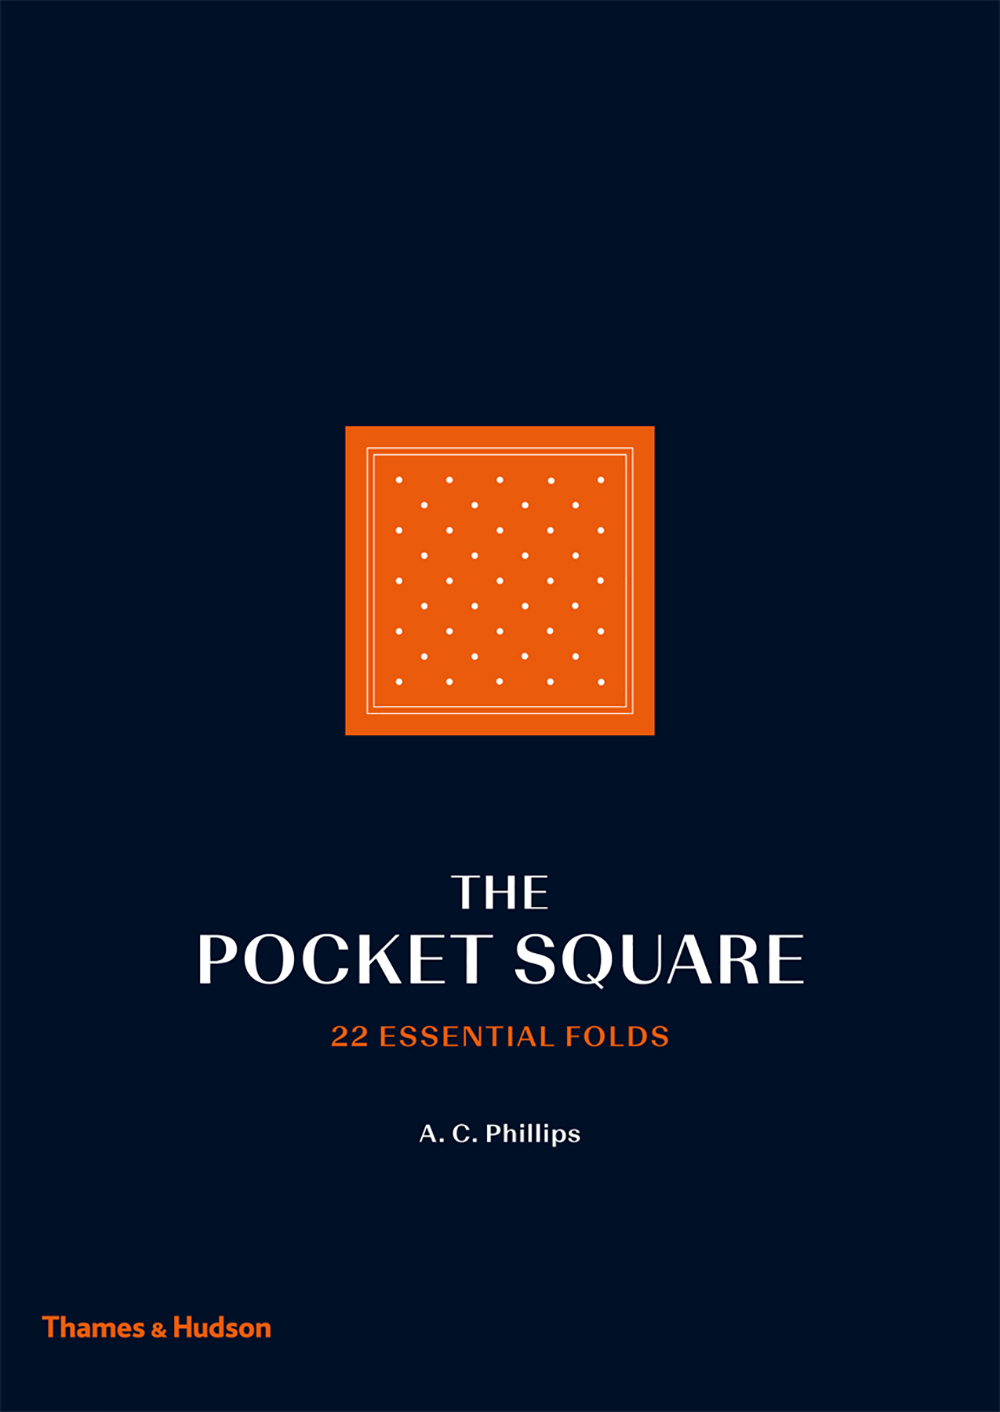 The Pocket Square book